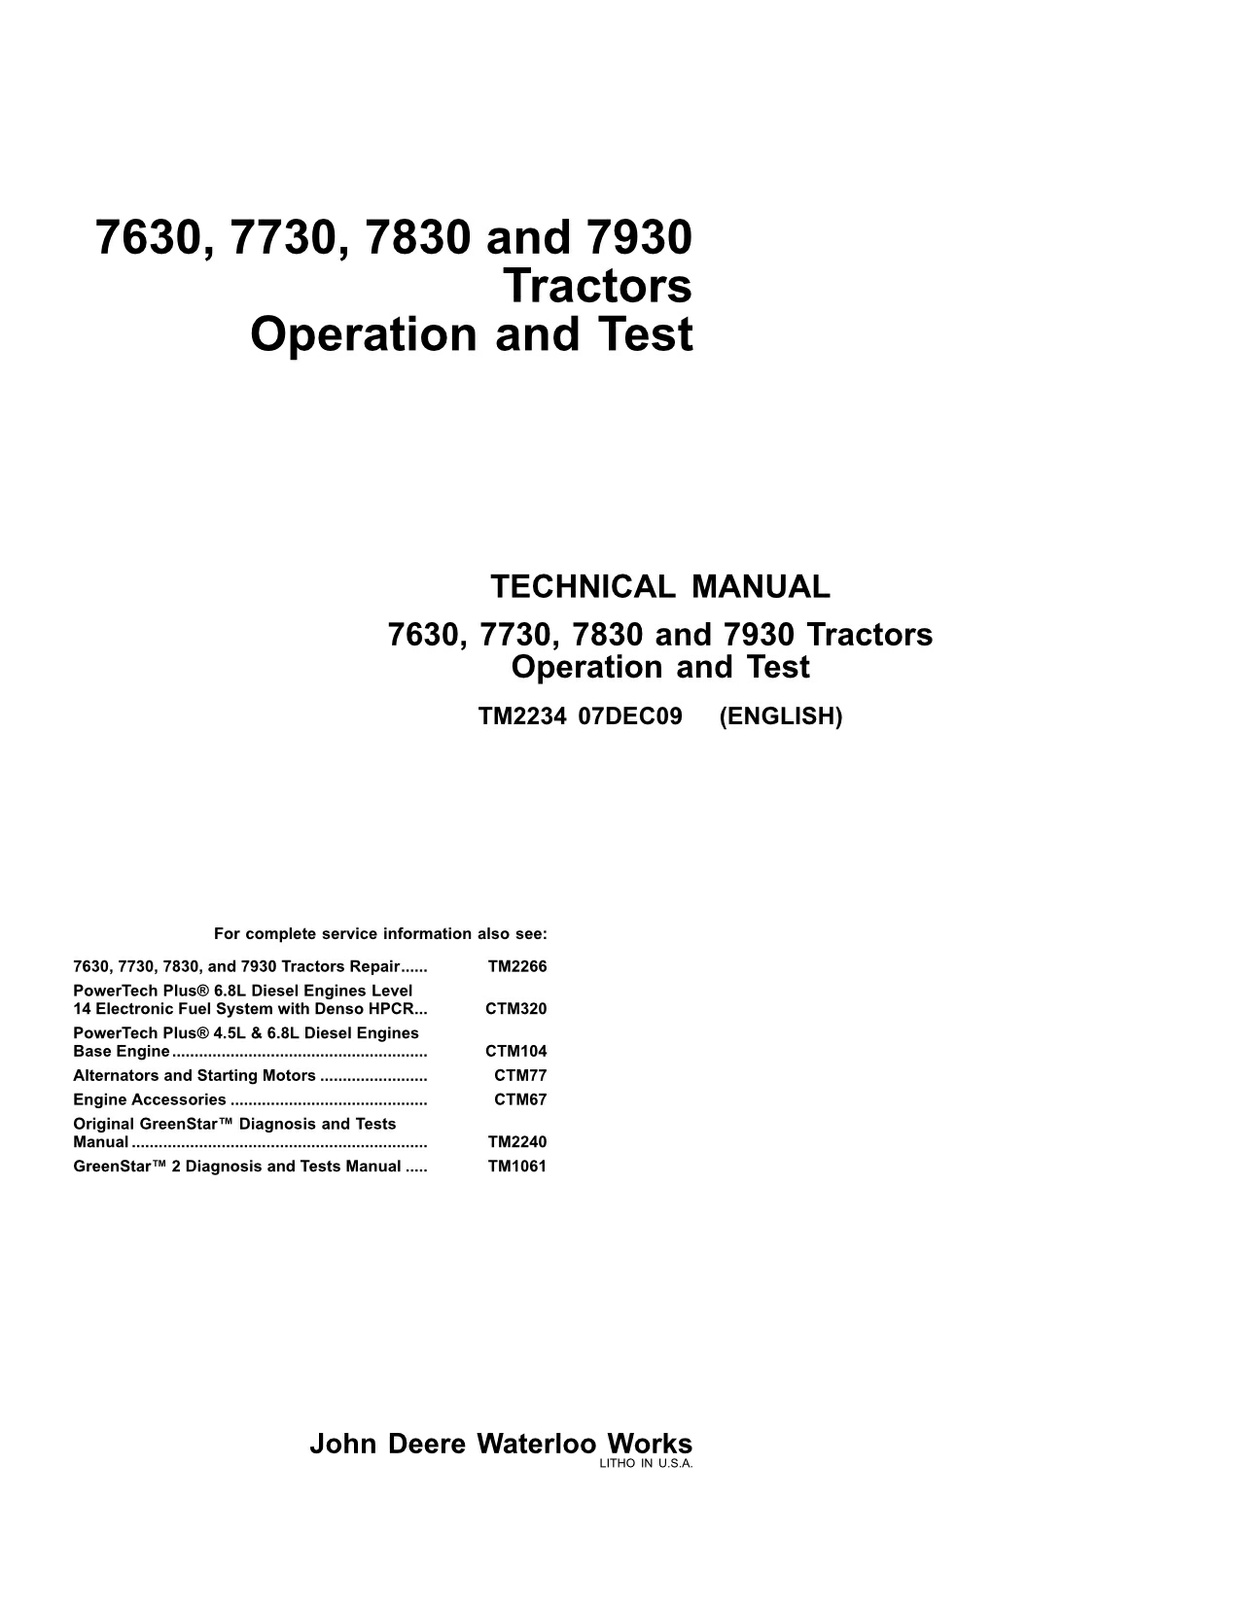 John Deere 7630 7730 7830 7930 - technical manual - operation and test - TM2234 - 5248 pages